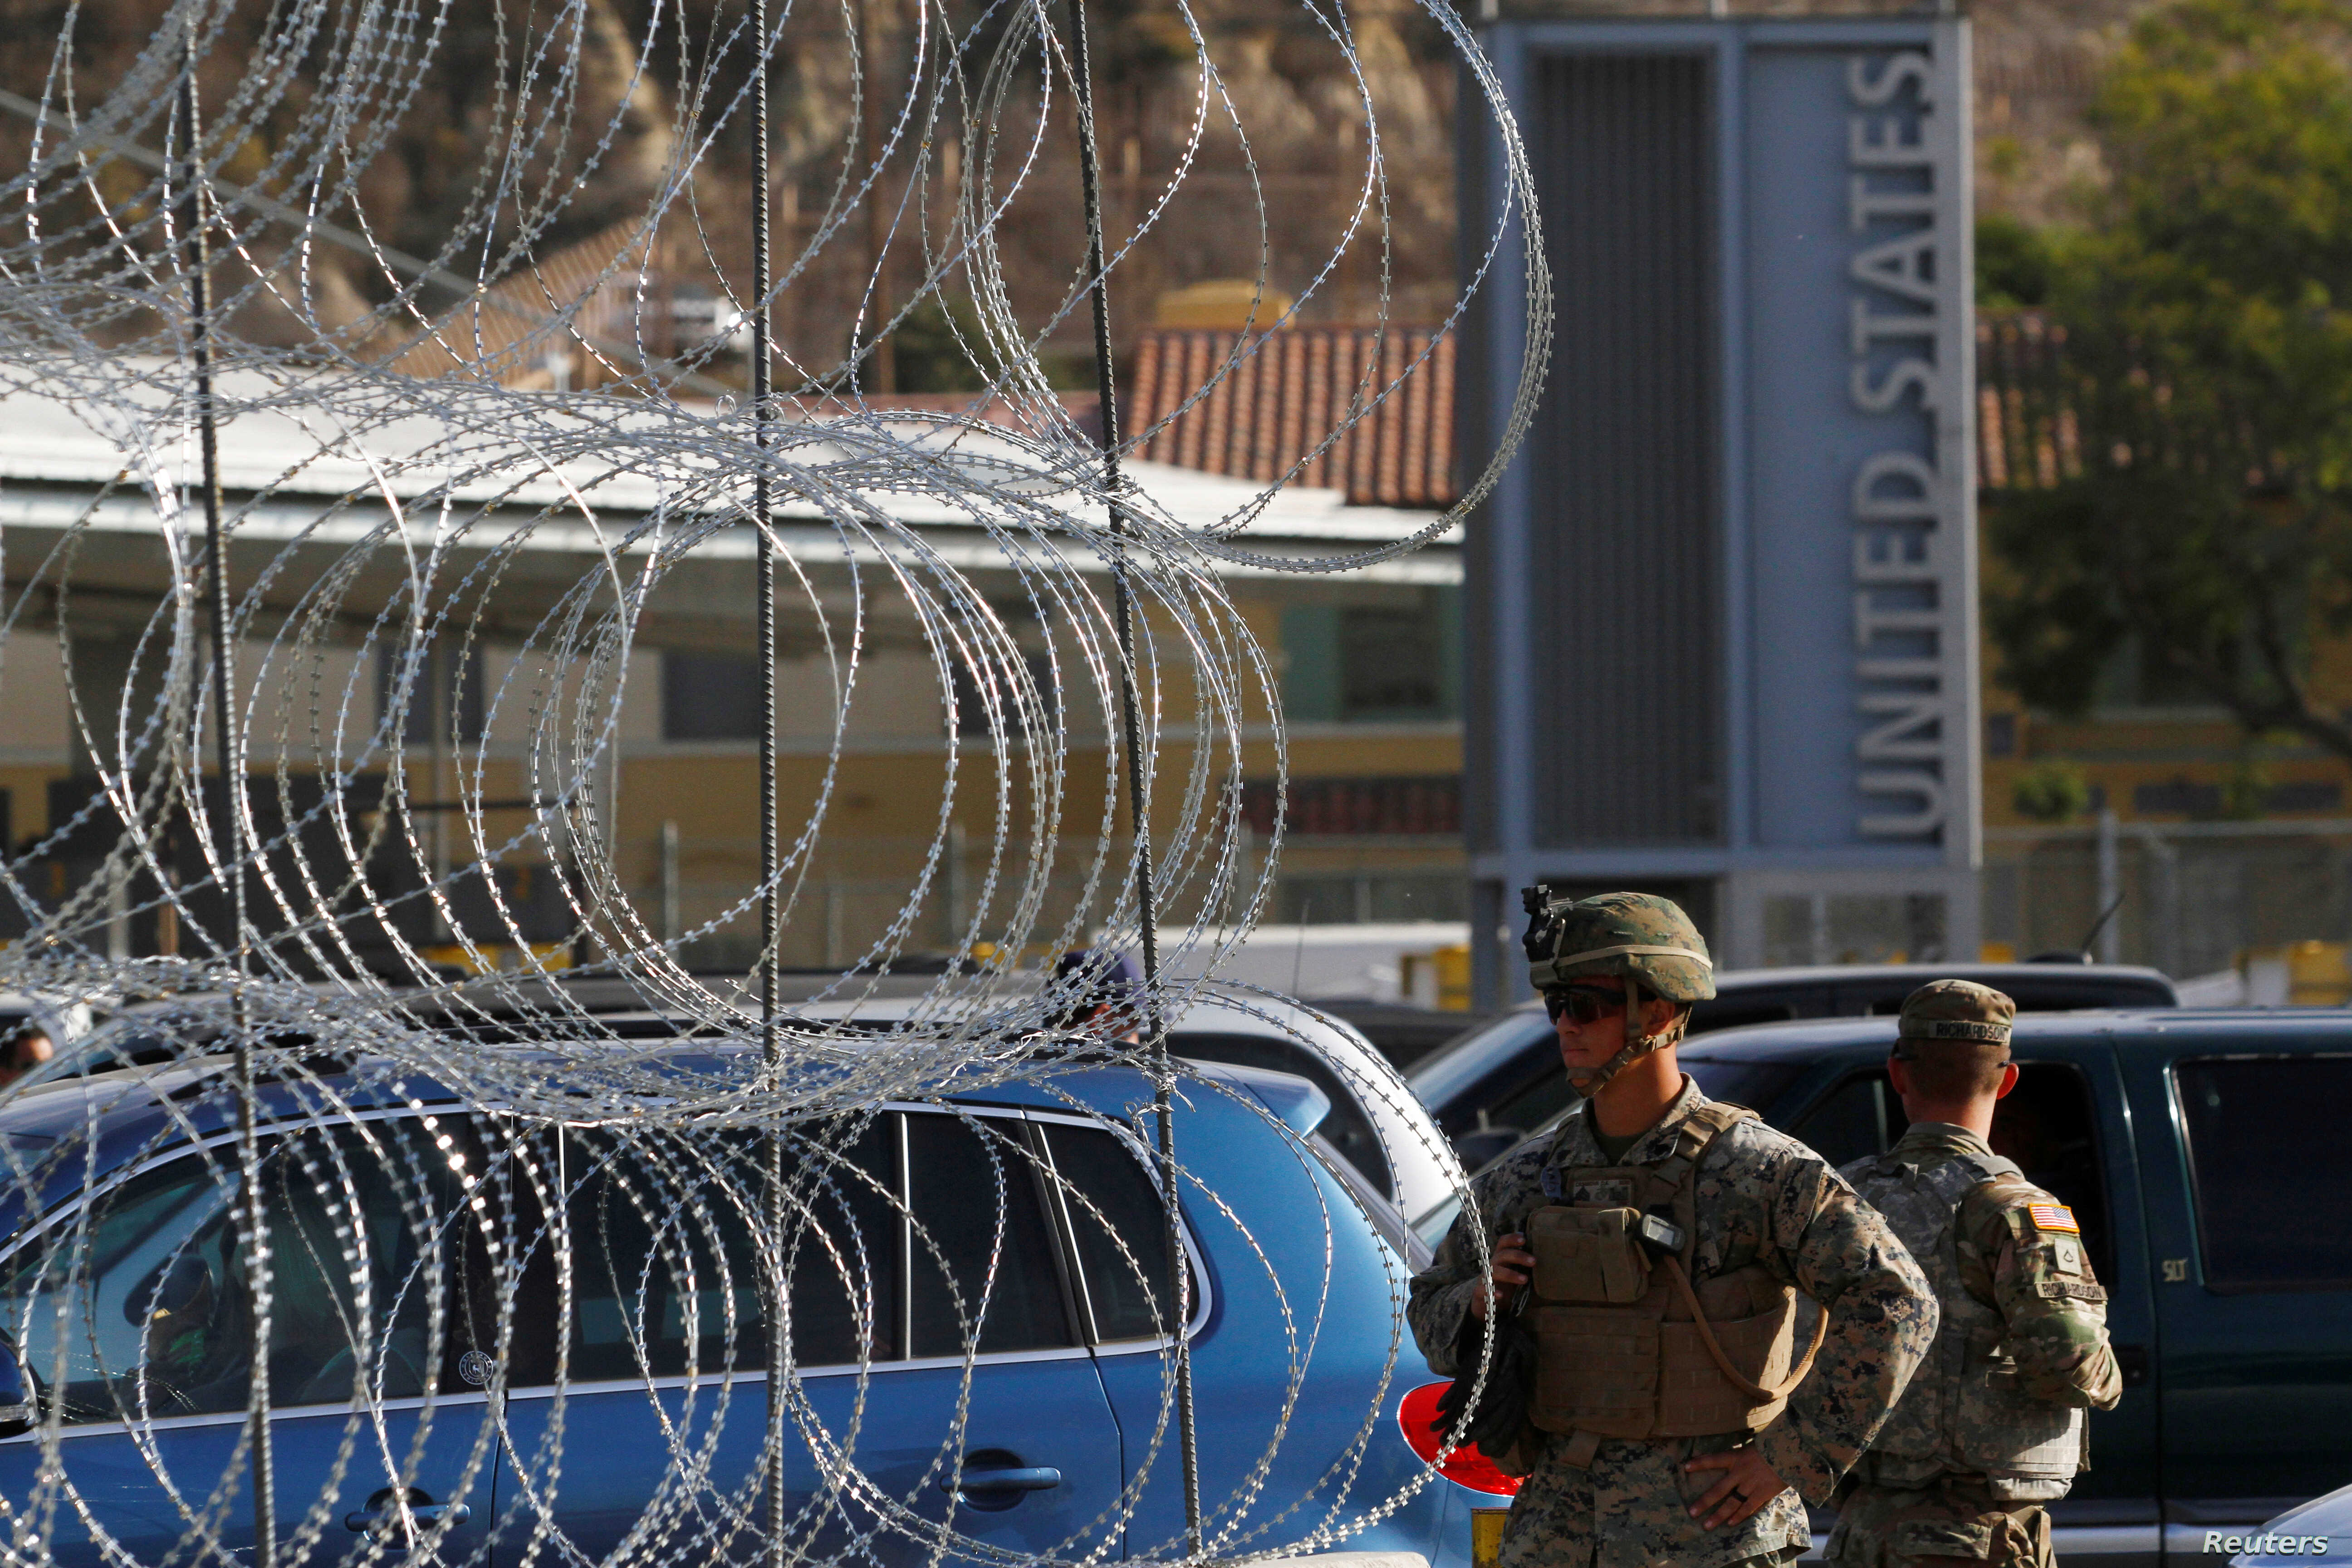 U.S. Marines stand guard next to a barricade with concertina wire at the border between Mexico and the U.S., in preparation for the arrival of migrants, in Tijuana, Mexico, Nov. 13, 2018.